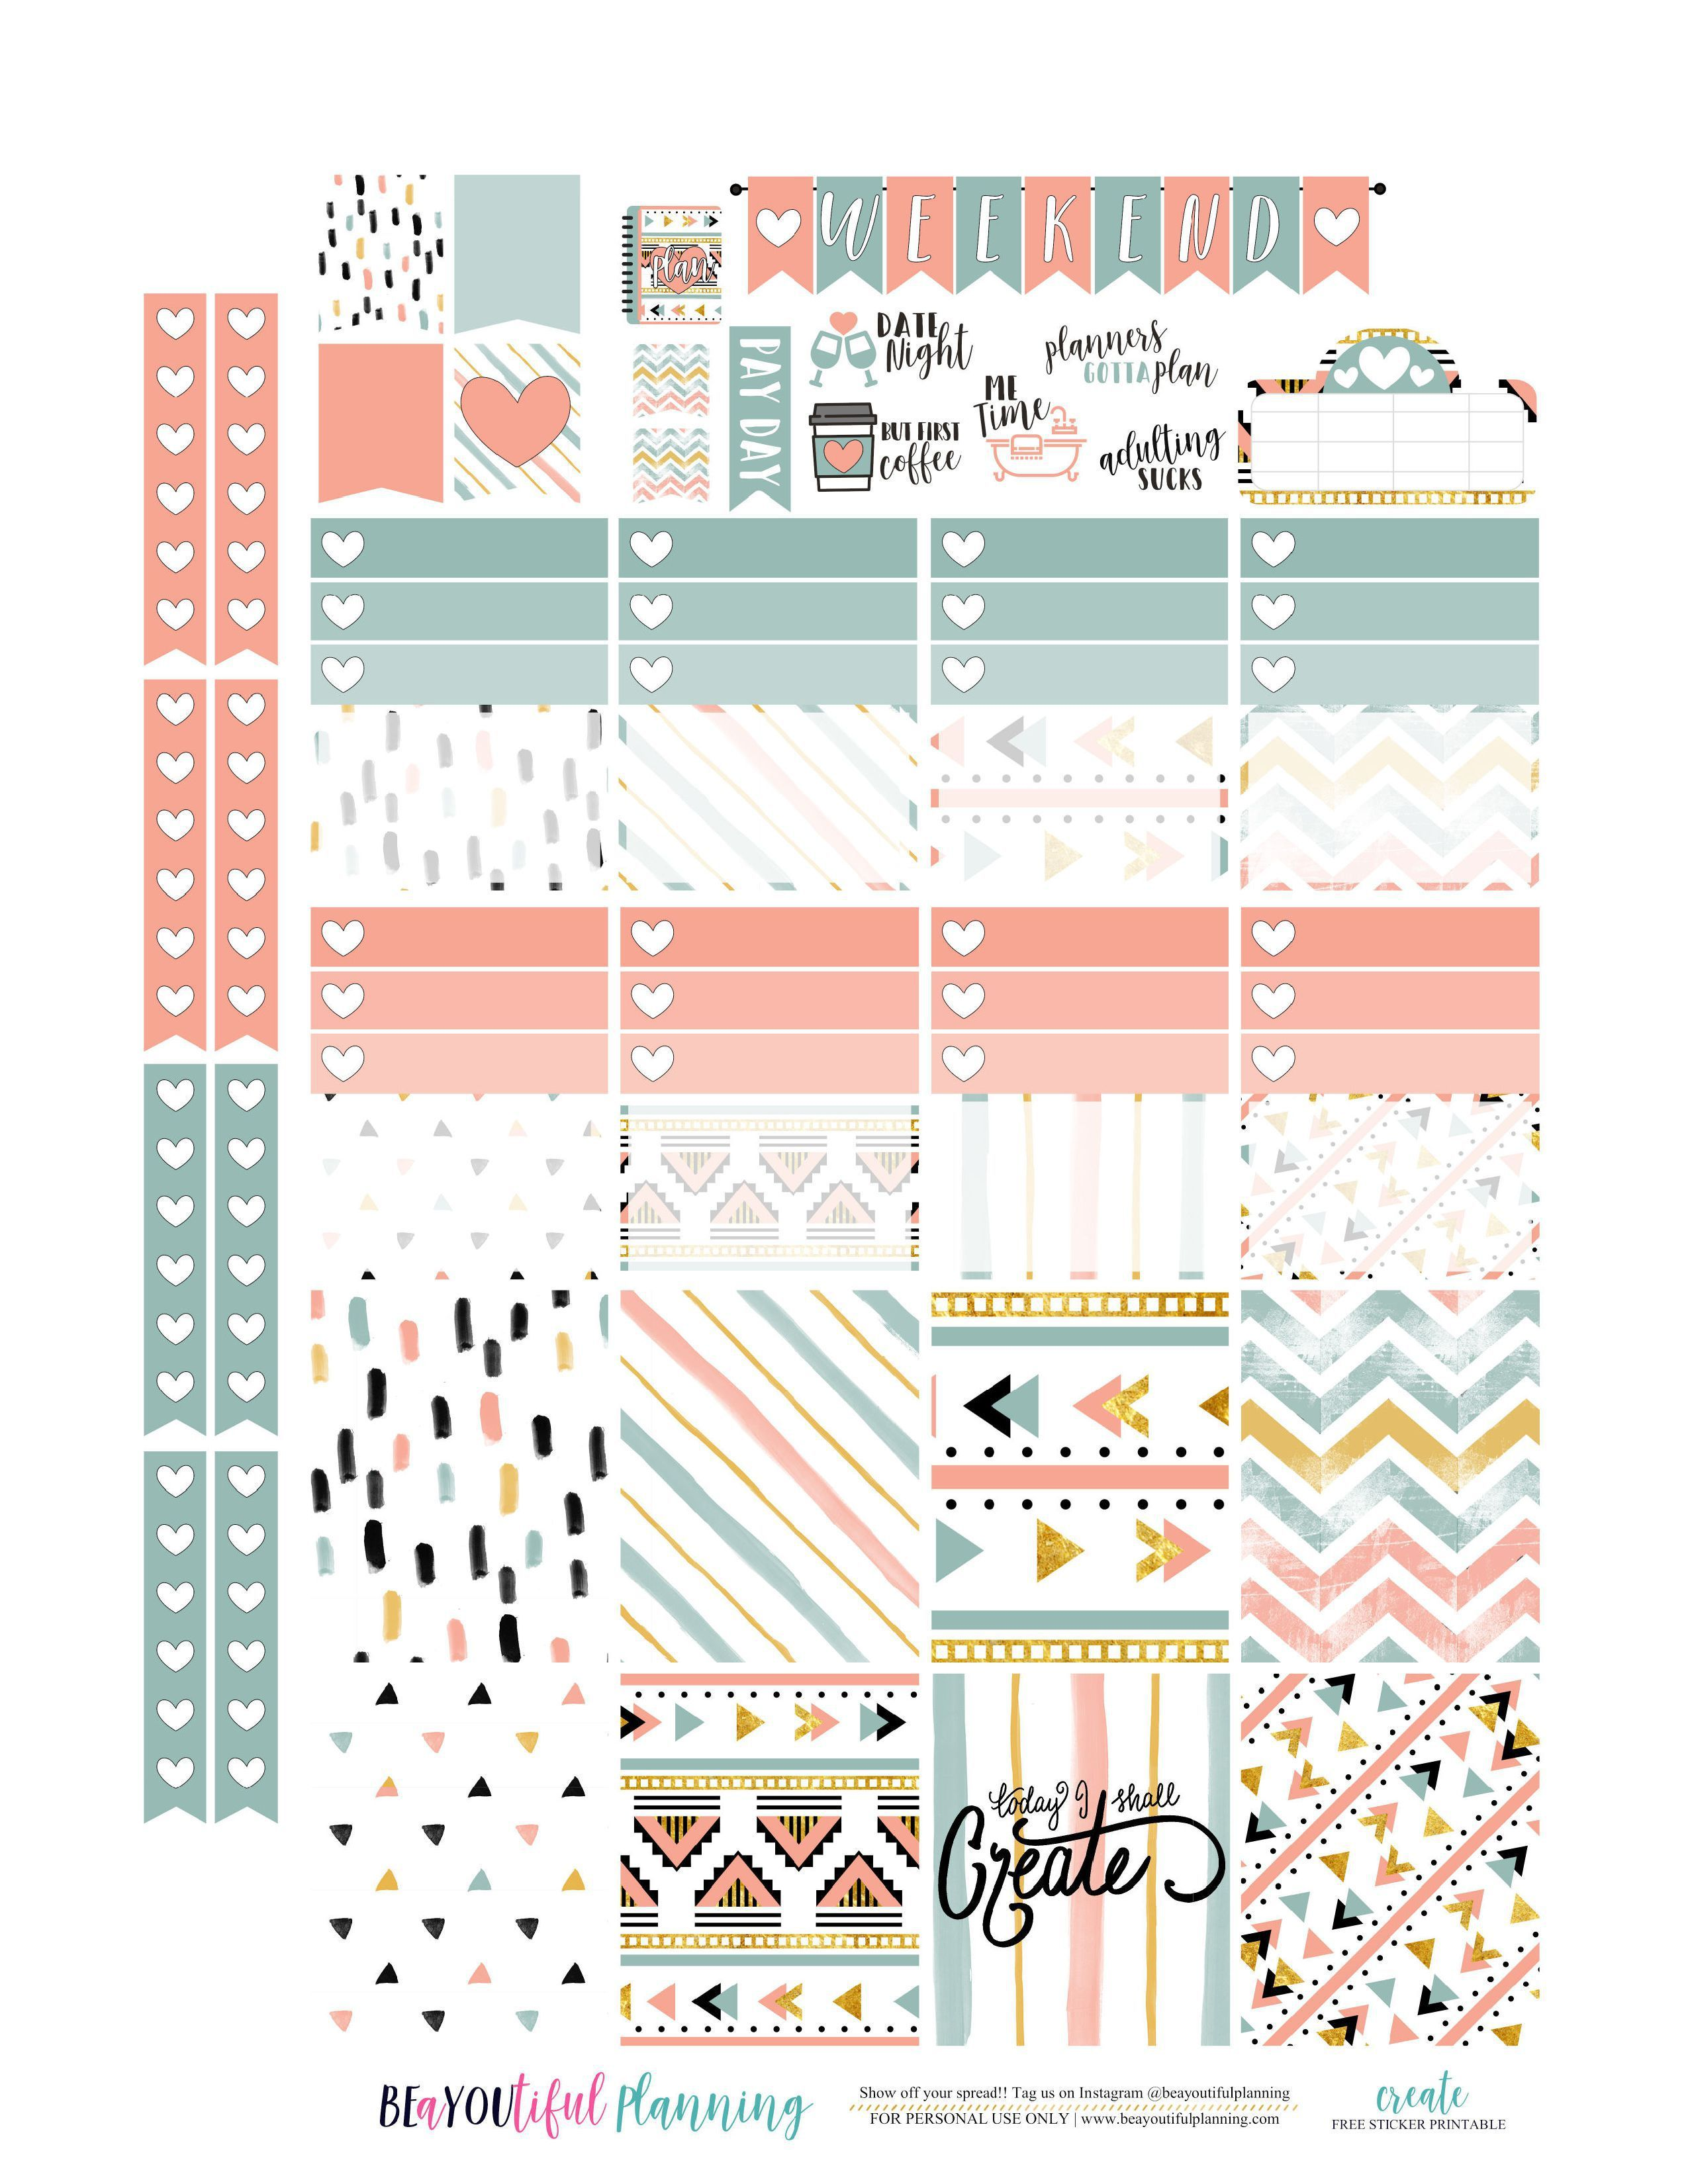 scales planner printable victoria thatcher planner pinterest free printable create planner stickers pdf and silhouette files for the happy planner and erin condren from beayoutiful planning